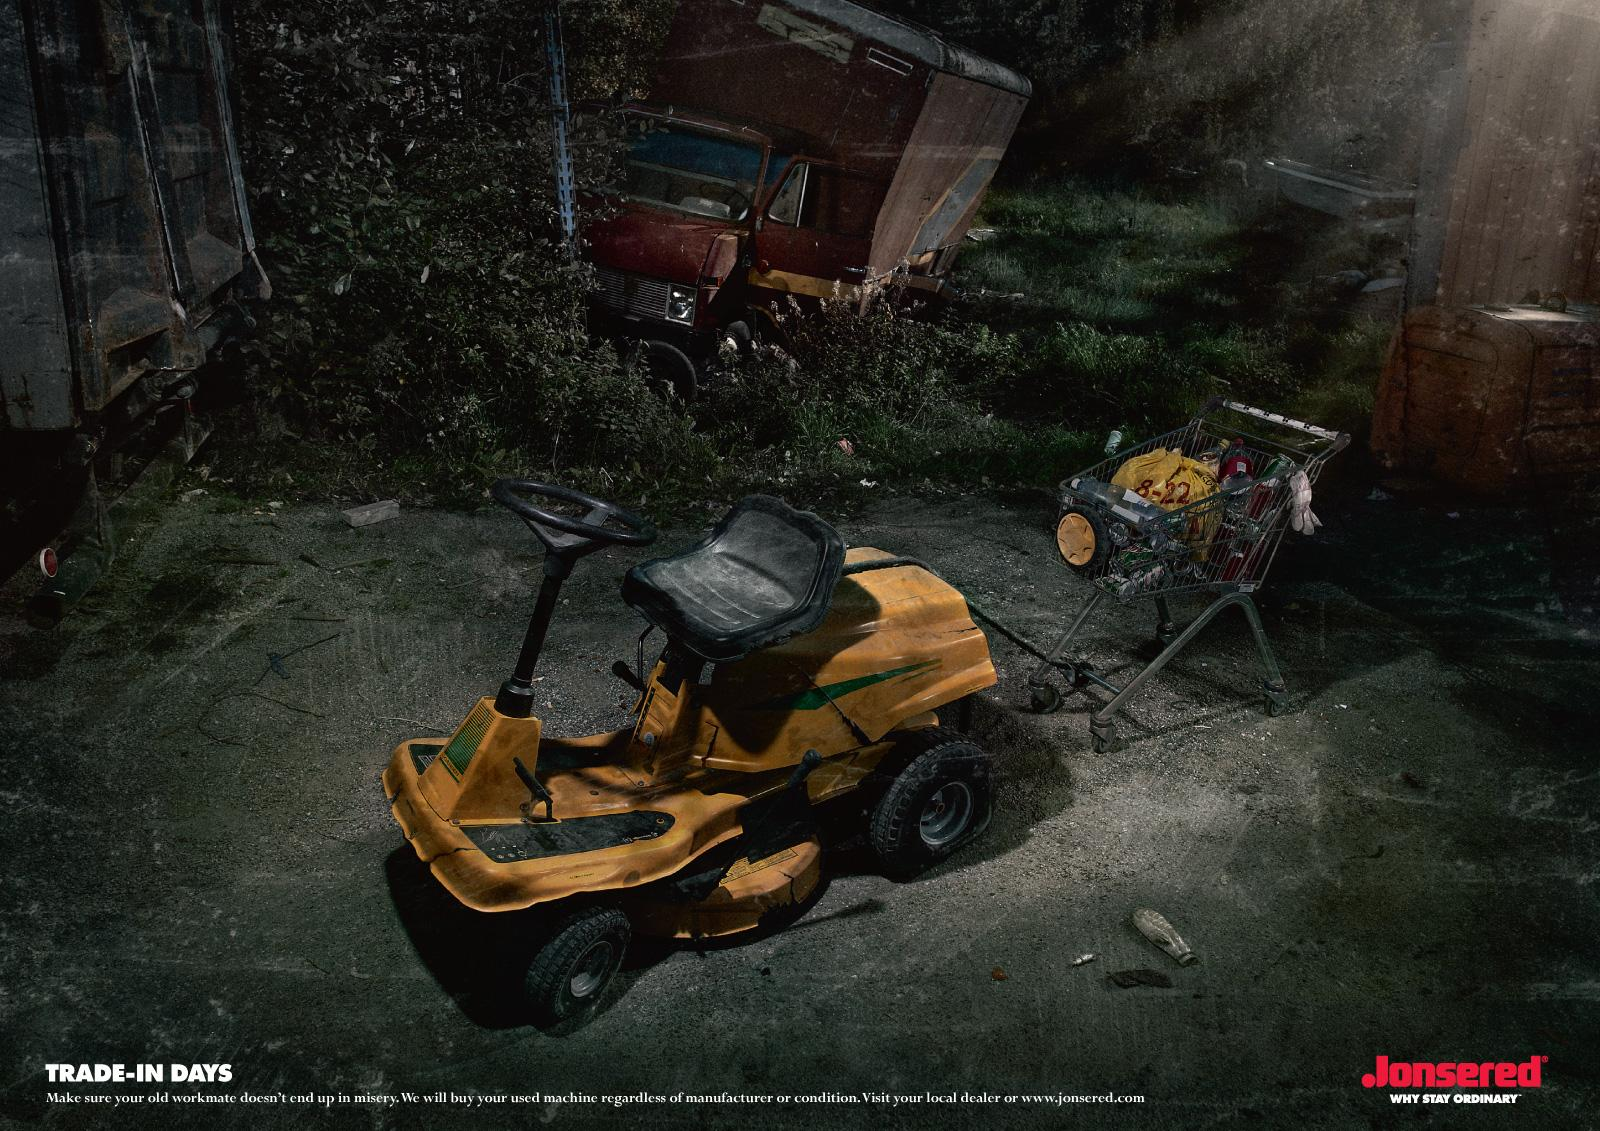 Jonsered Print Ad -  Trade-in campaign, Tractor